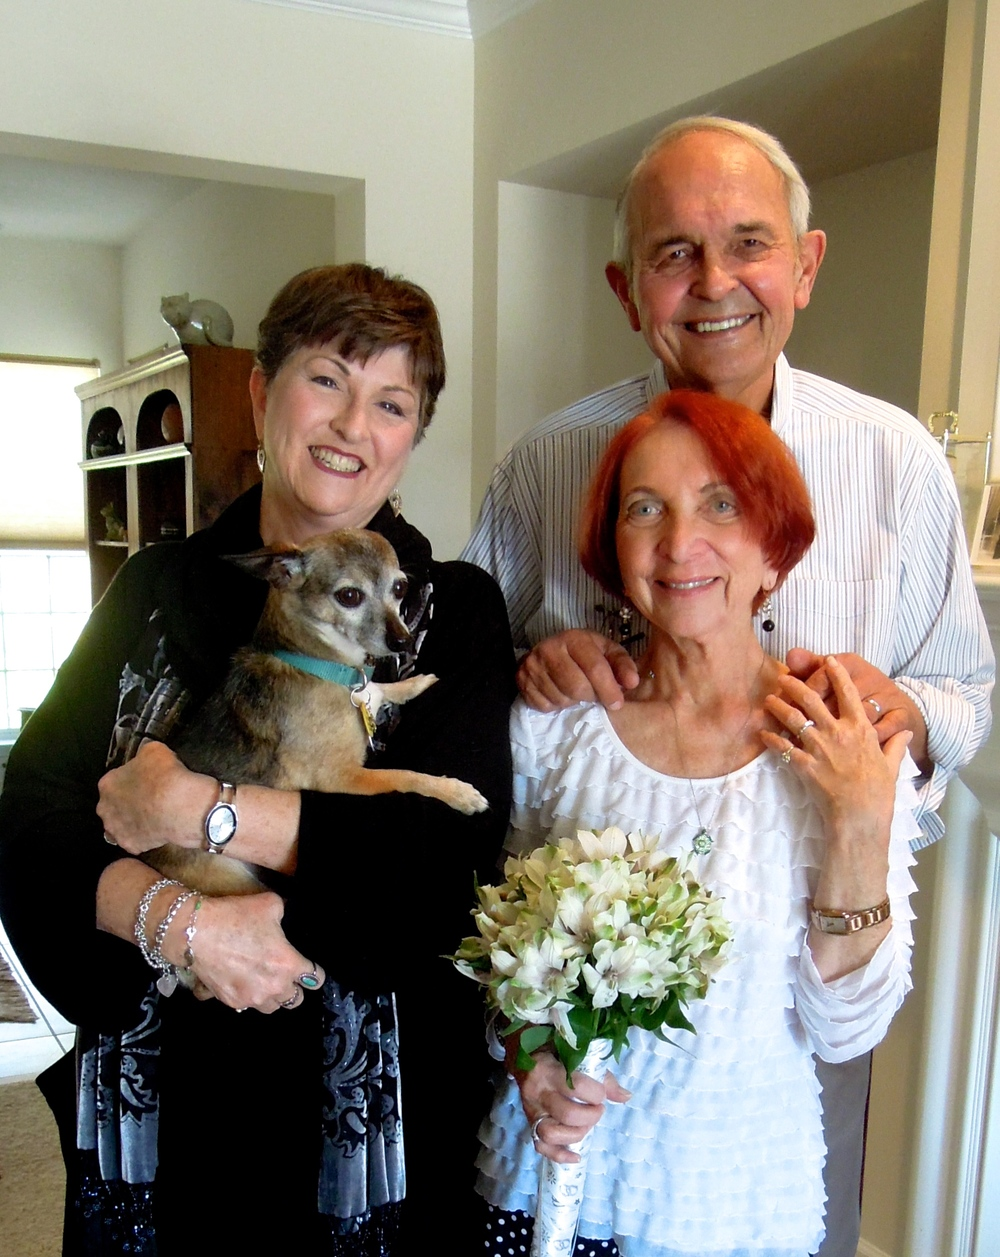 Congratulations to Phyllis and George and their sweet pup, Romey!